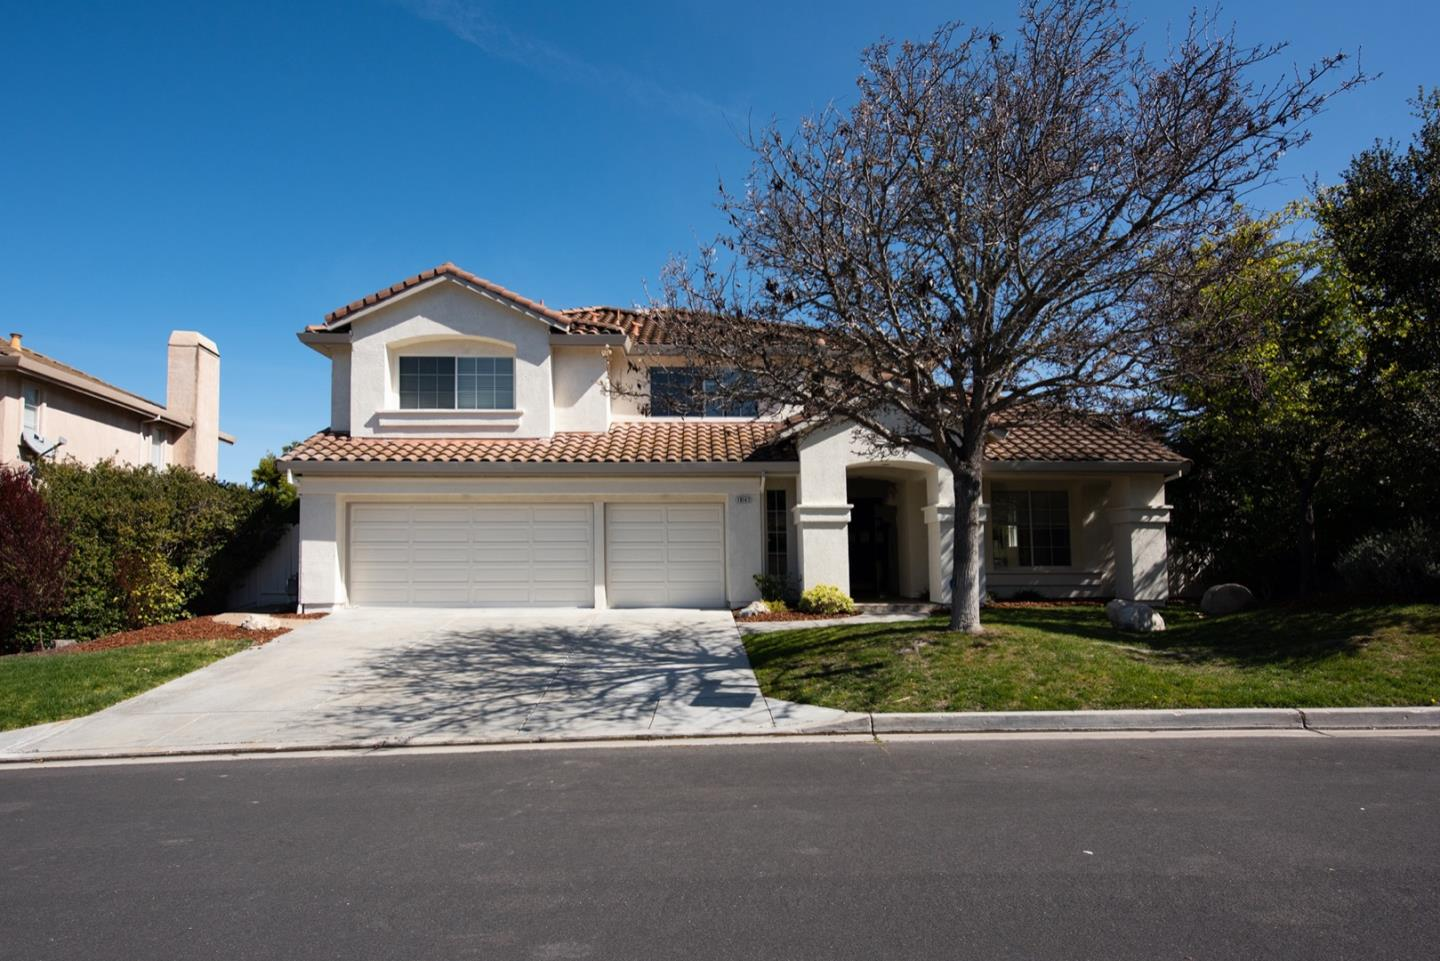 Detail Gallery Image 1 of 14 For 19147 Garden Valley Way, Salinas,  CA 93908 - 5 Beds | 3/1 Baths